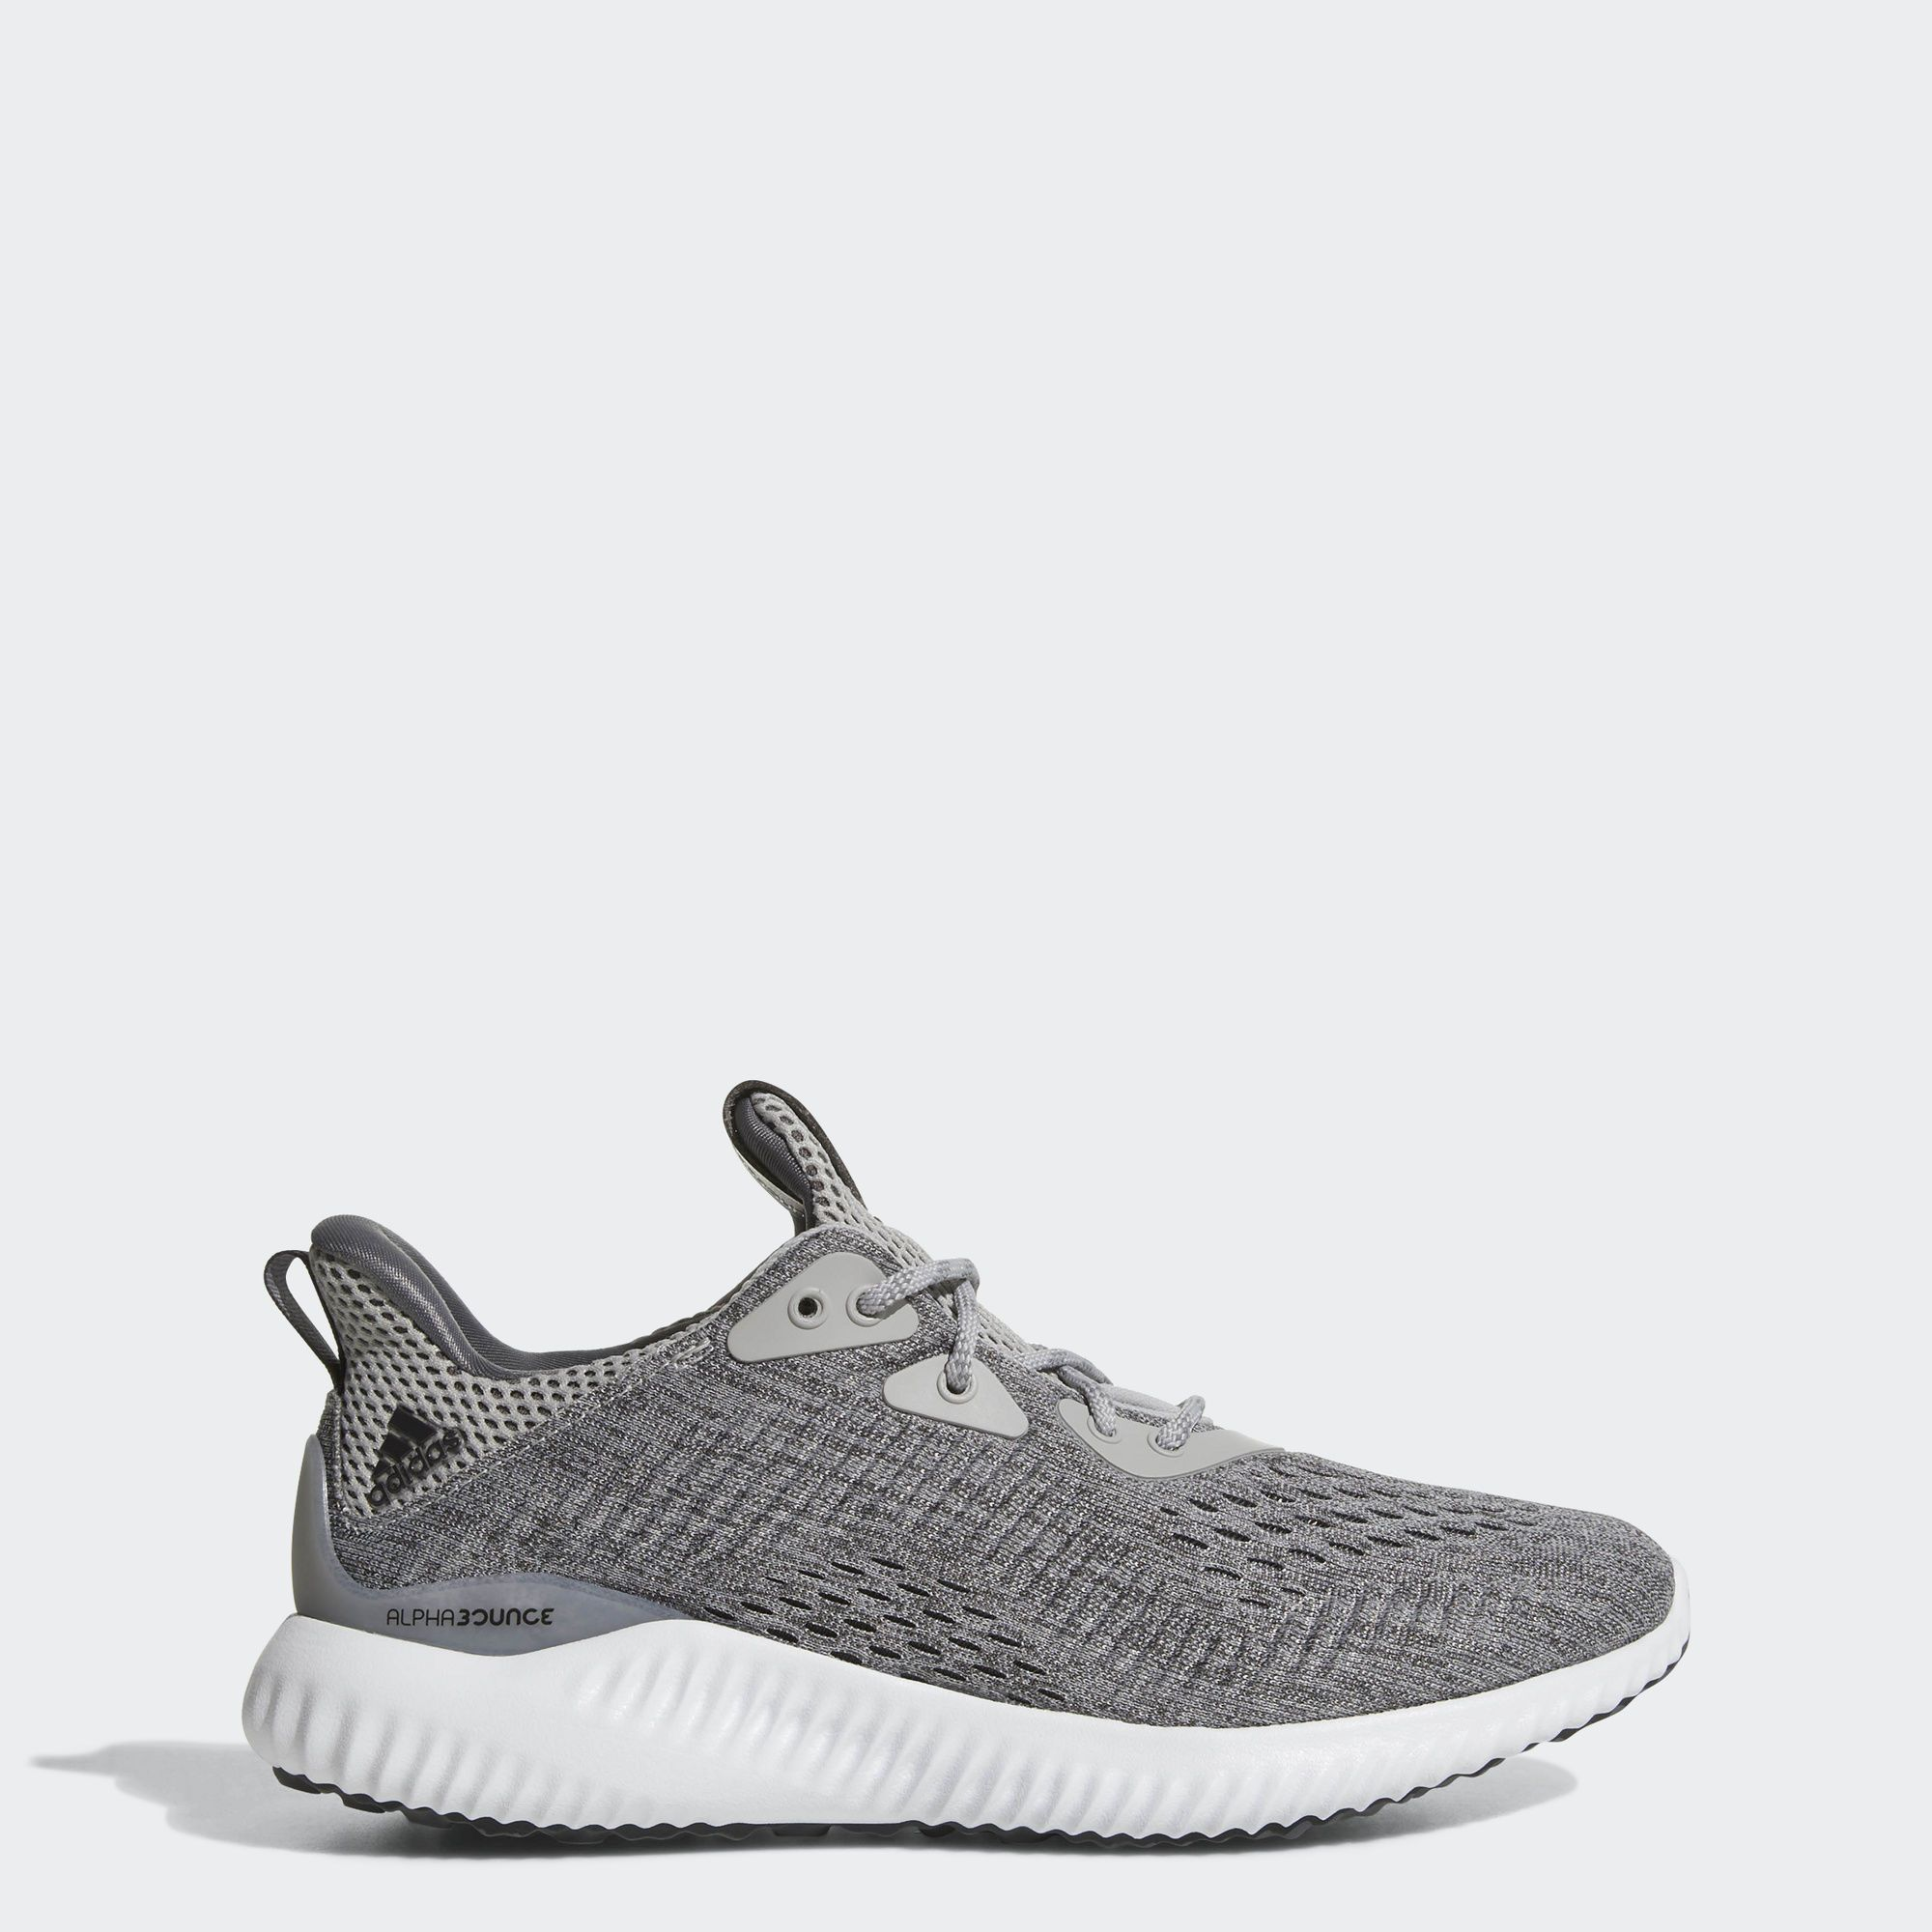 los angeles f37d5 8ed76 Build up your strength and endurance in these womens running shoes. The  breathable mesh upper hugs the foot snugly and adapts to its natural  movement.